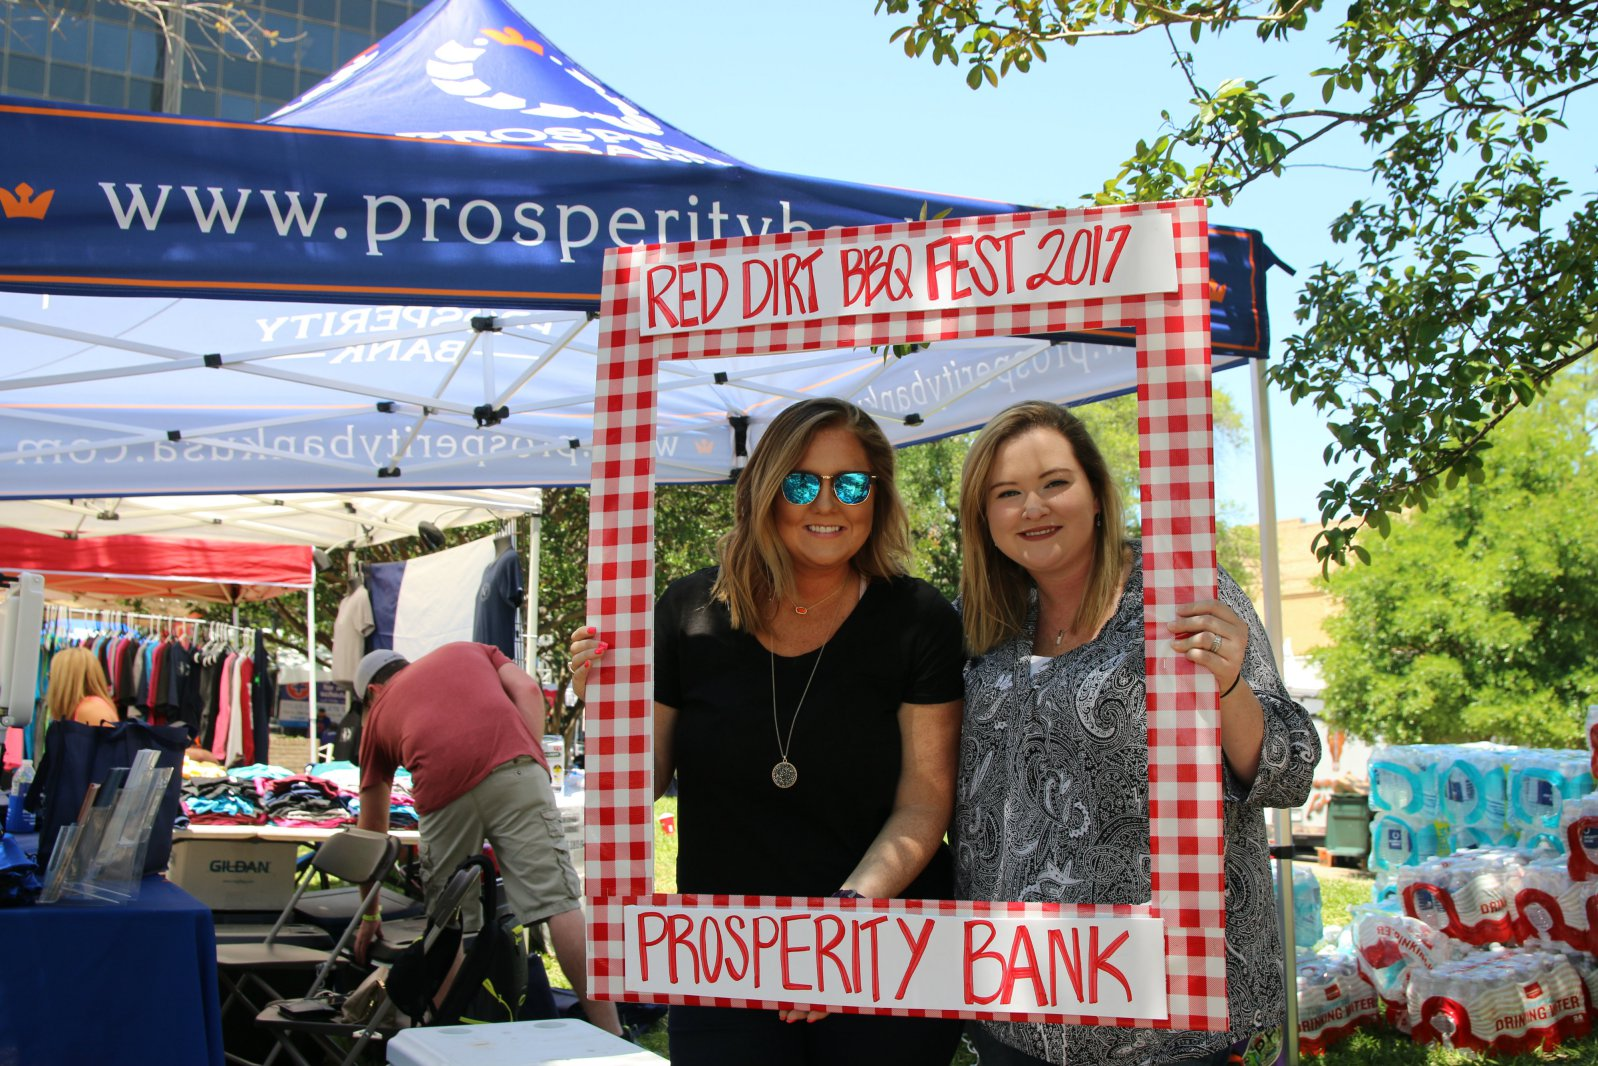 Prosperity Bank at Red Dirt 2017